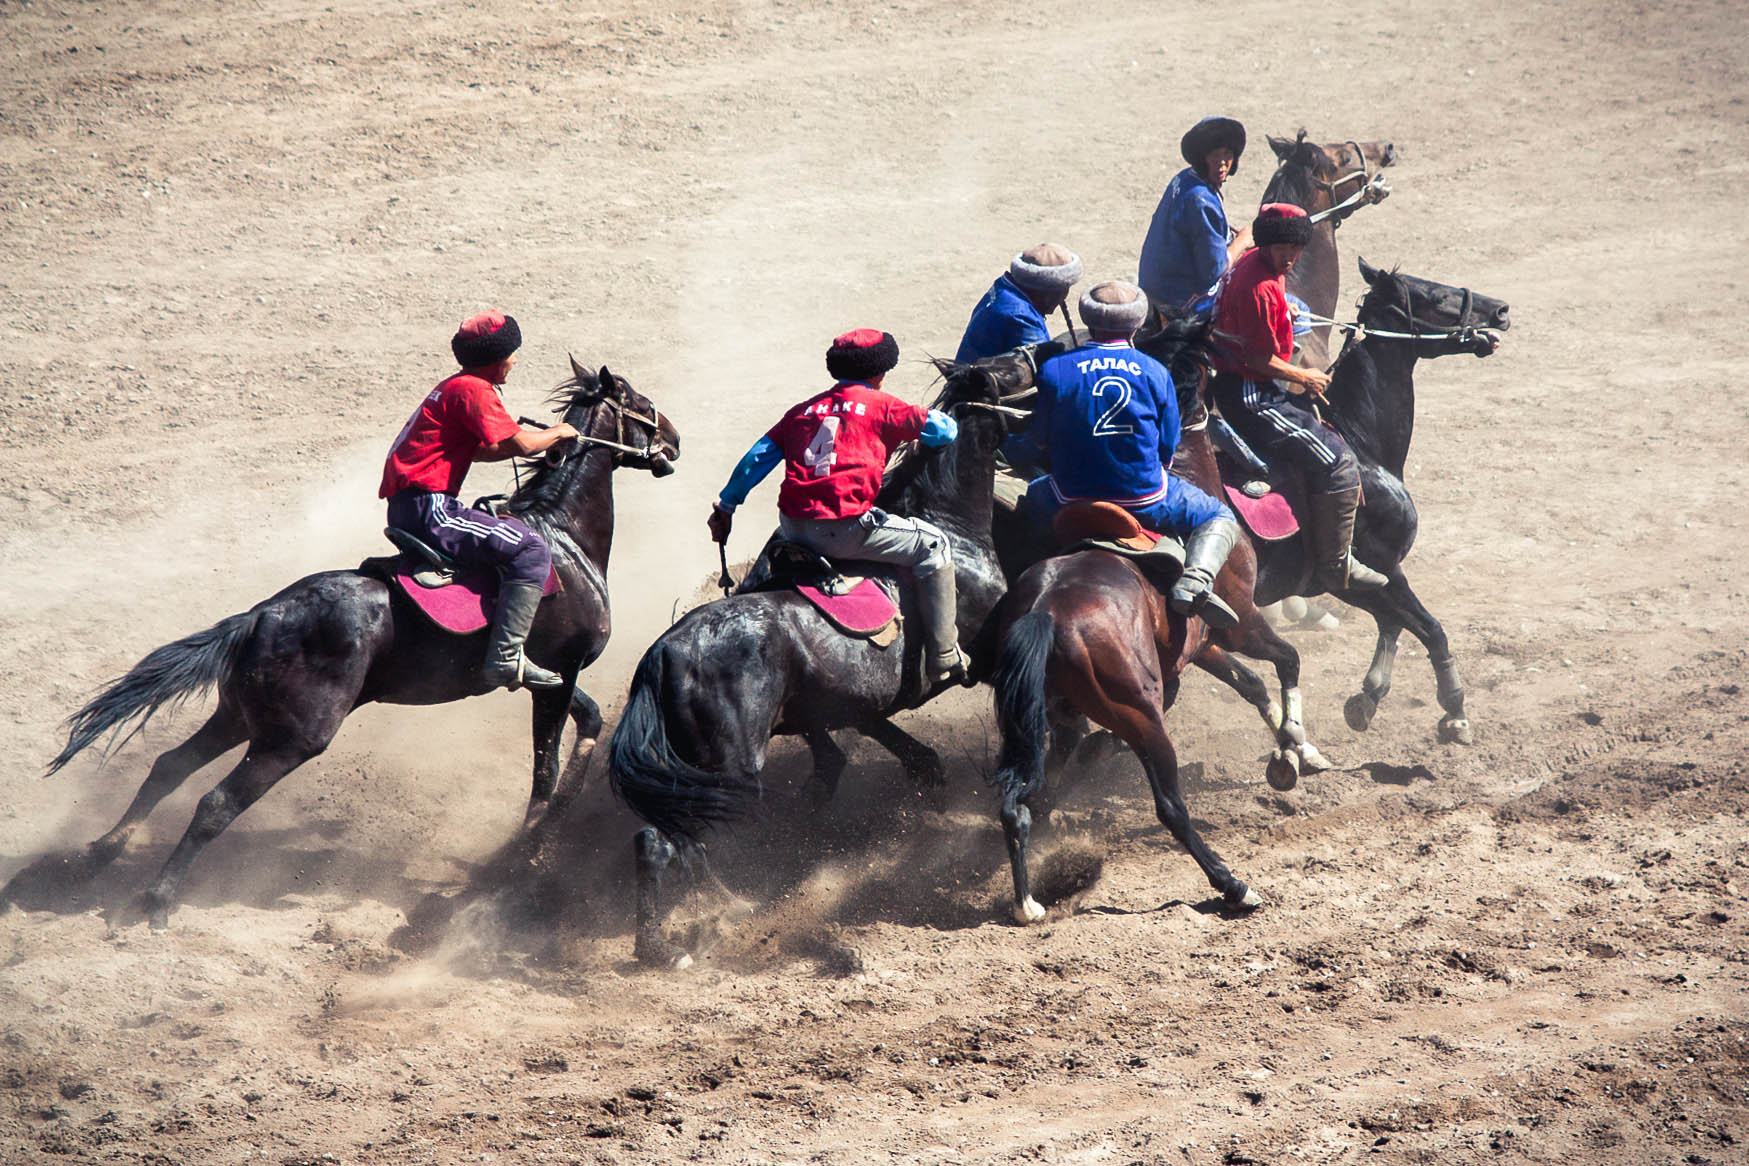 Buzkashi game photos